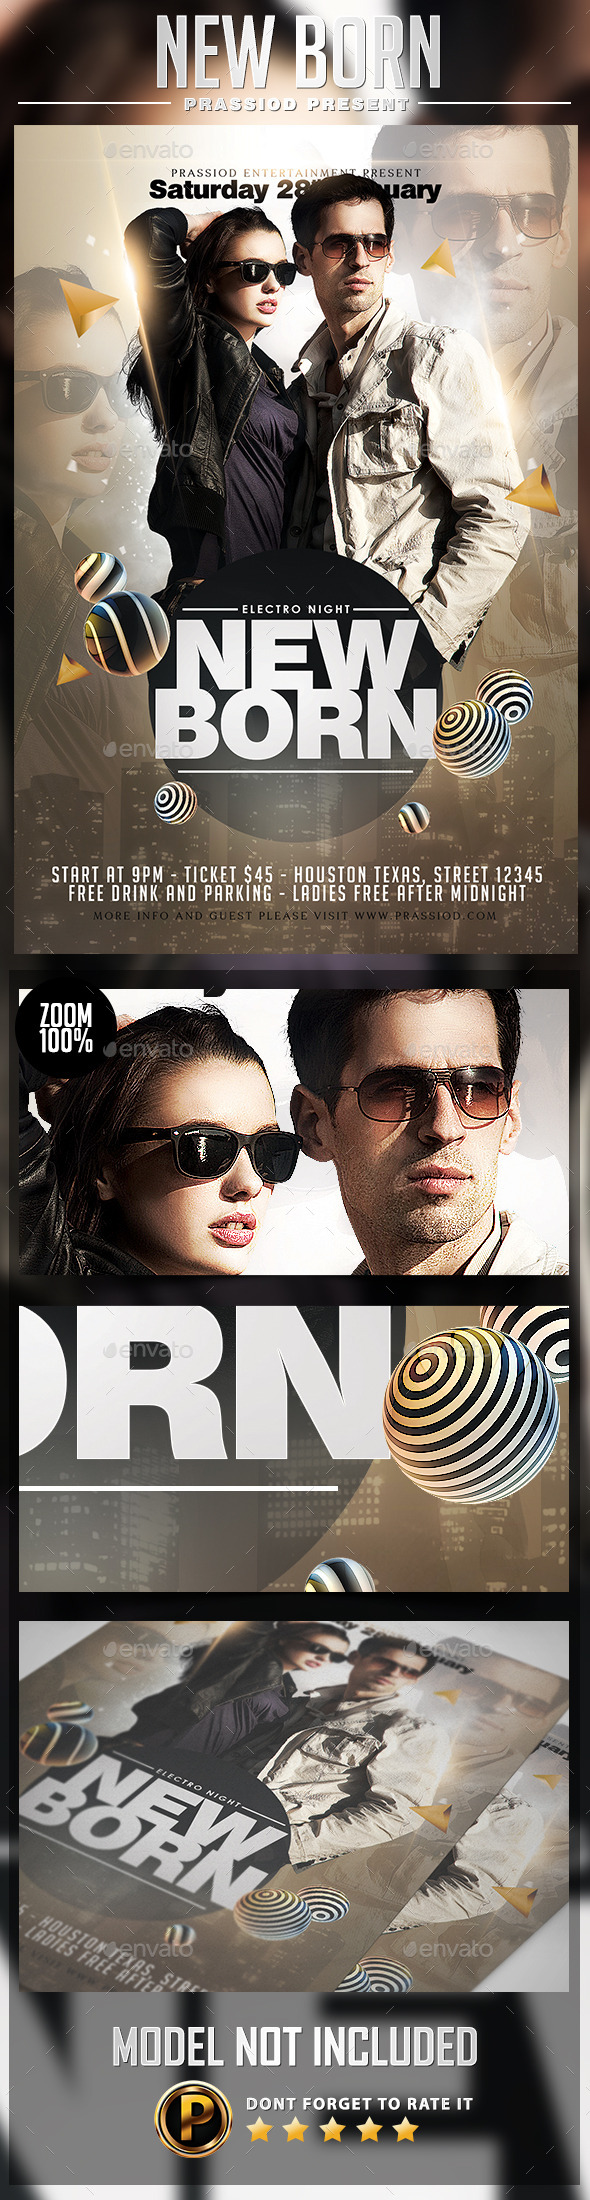 New Born Flyer Template - Clubs & Parties Events